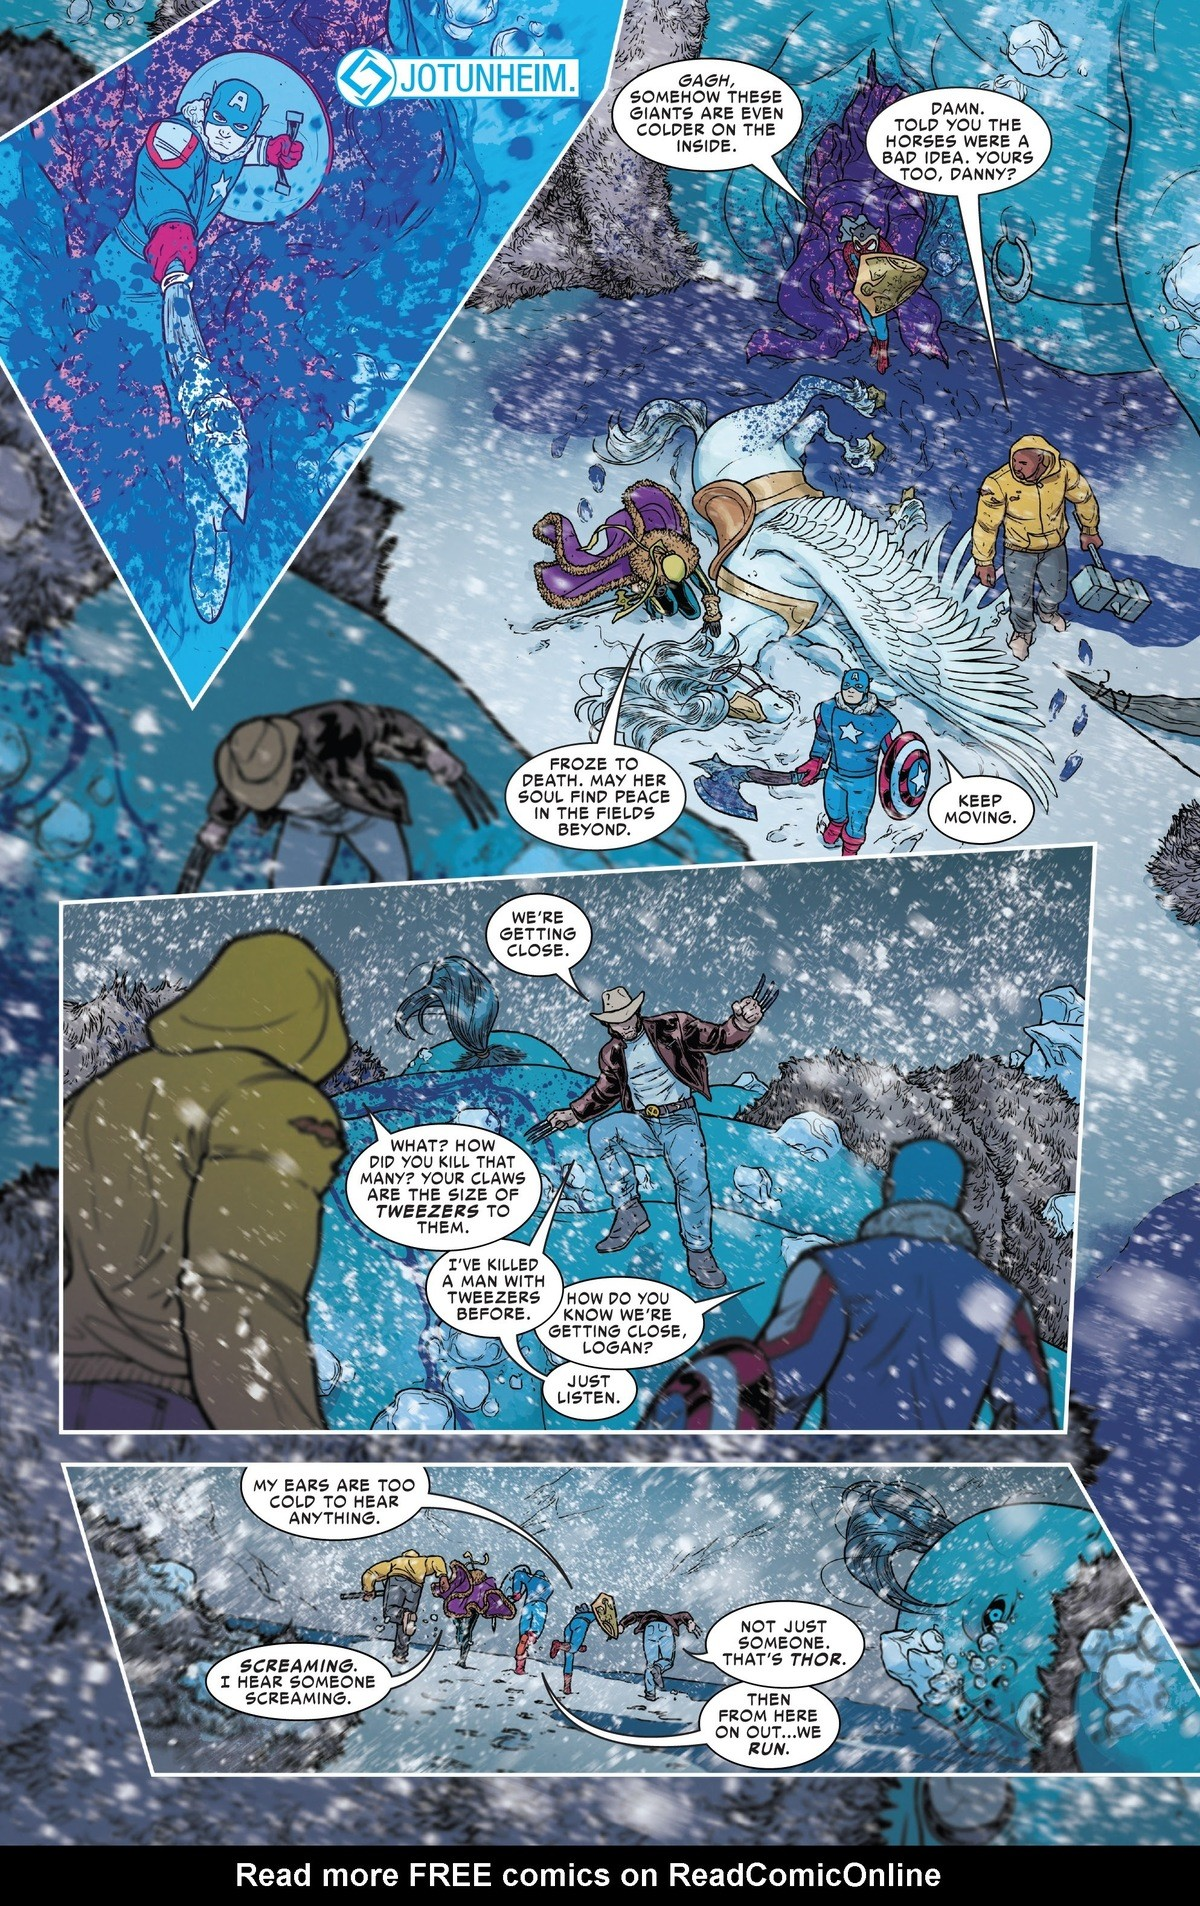 Tweezers. War of the realms #3.. I bet thor is screaming like a little girlComment edited at .